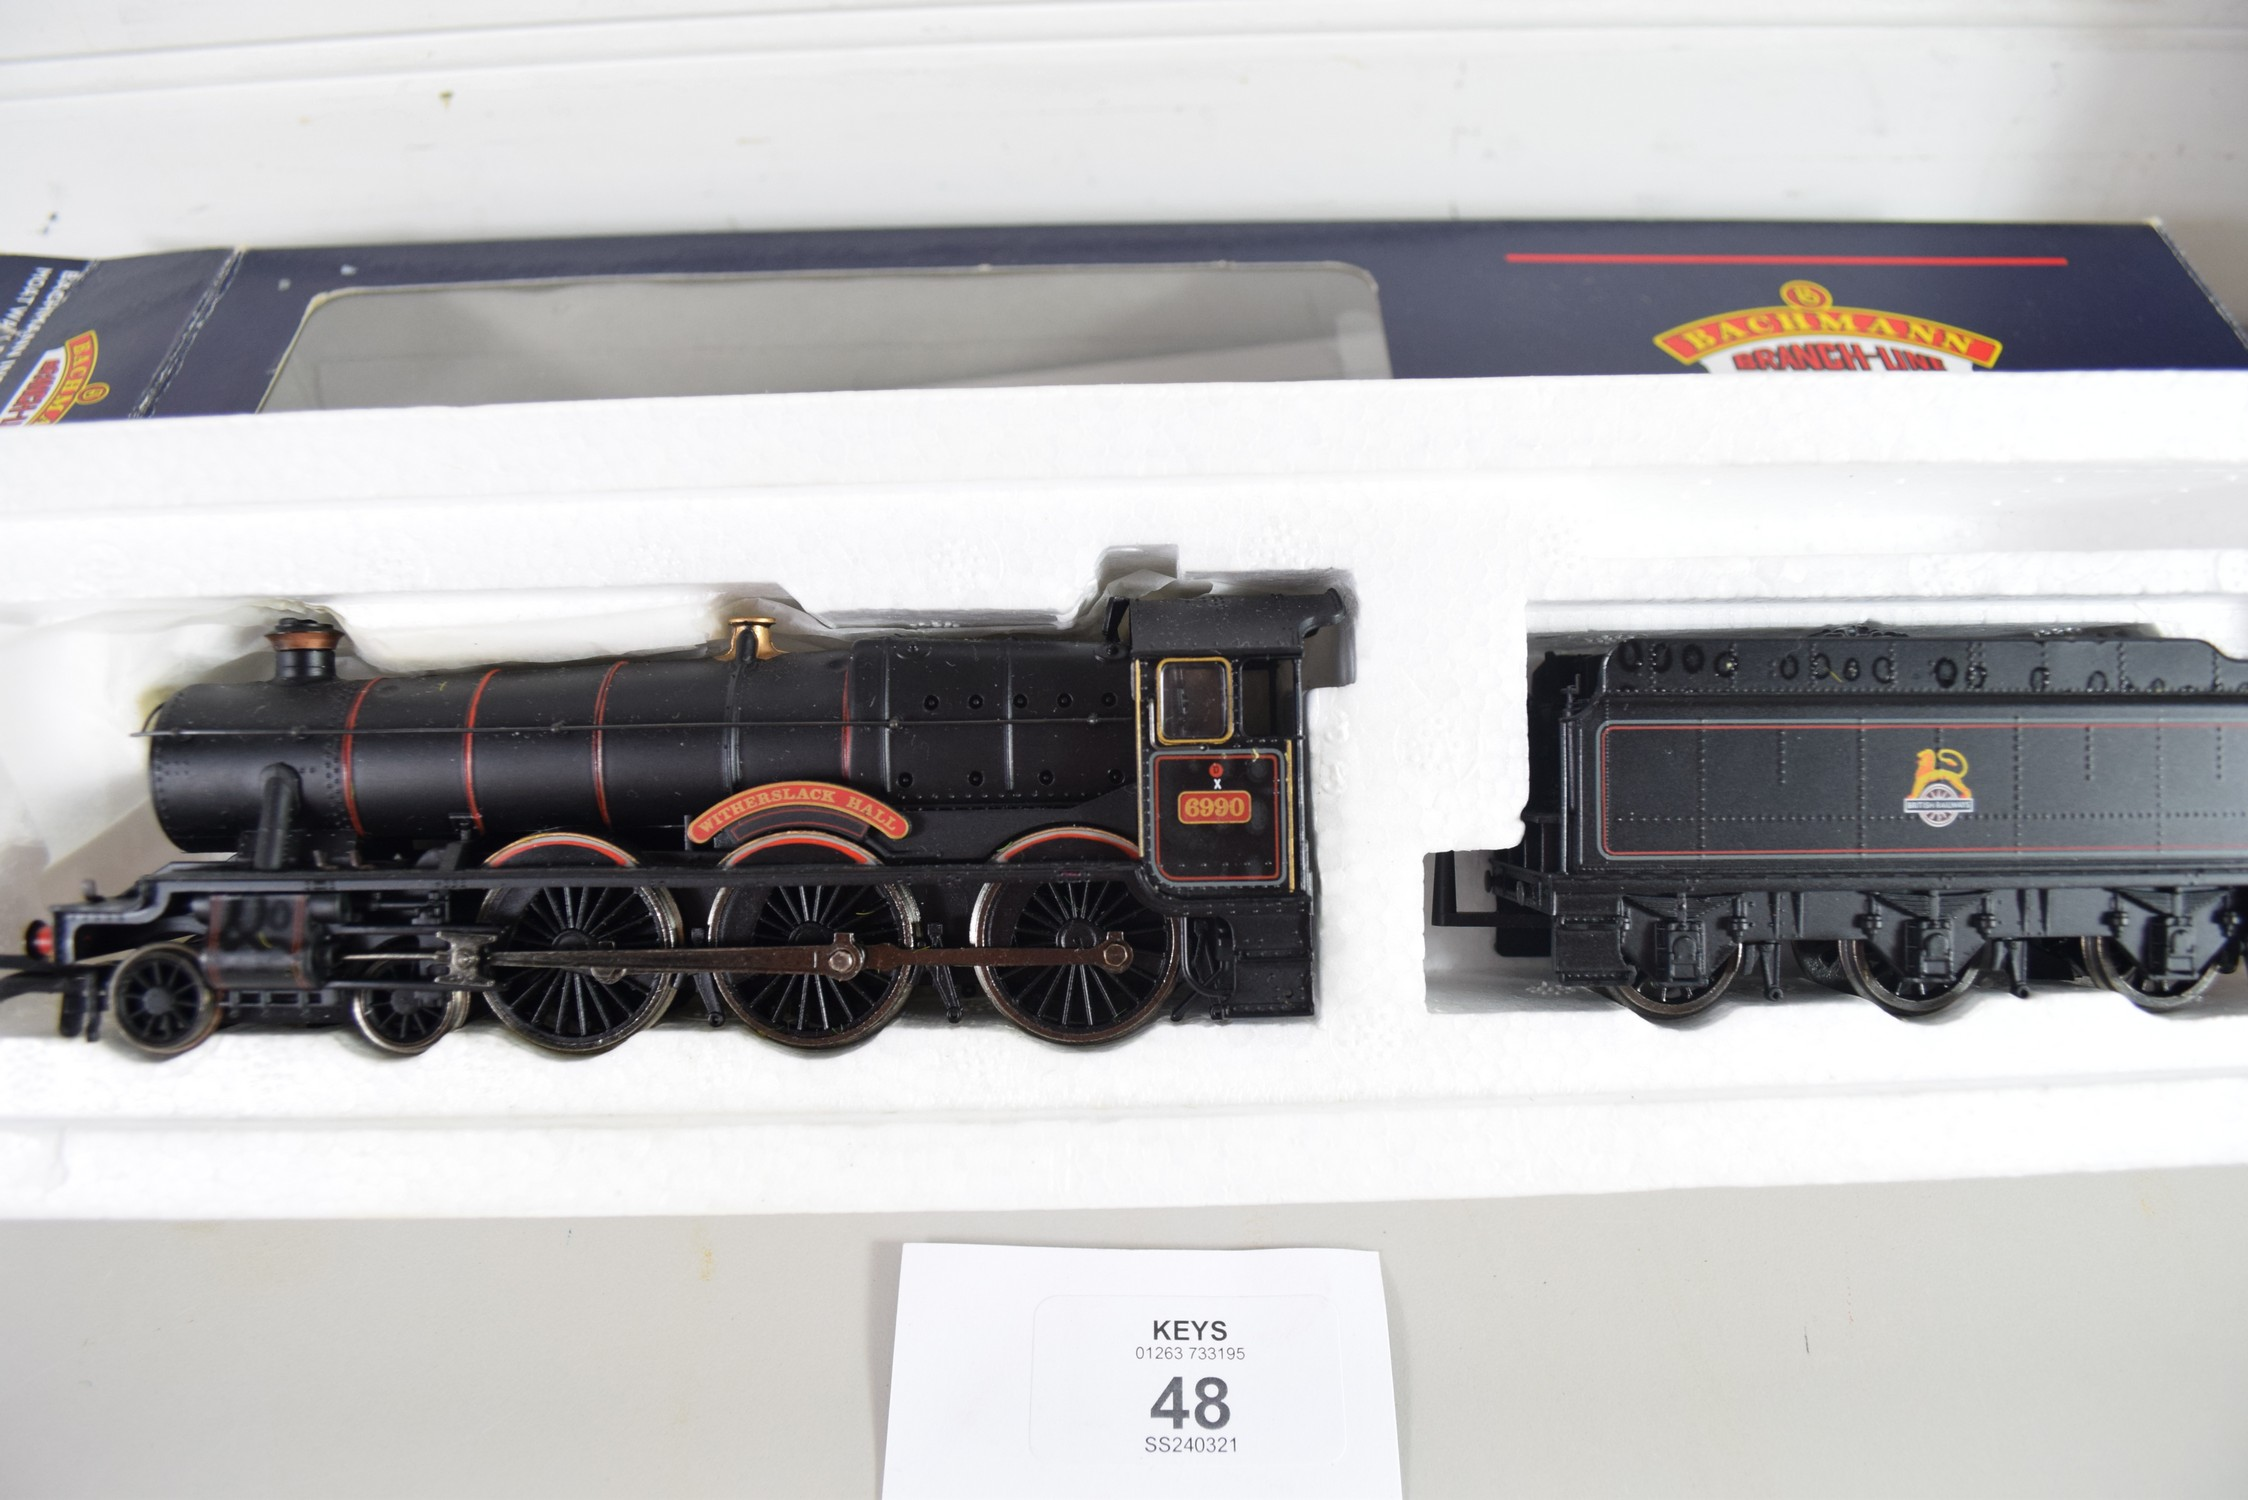 """Boxed Bachmann 00 gauge 31-775 modified haul """"Witherslack Hall"""" BR lined black e-emblem, No 6990 - Image 2 of 2"""